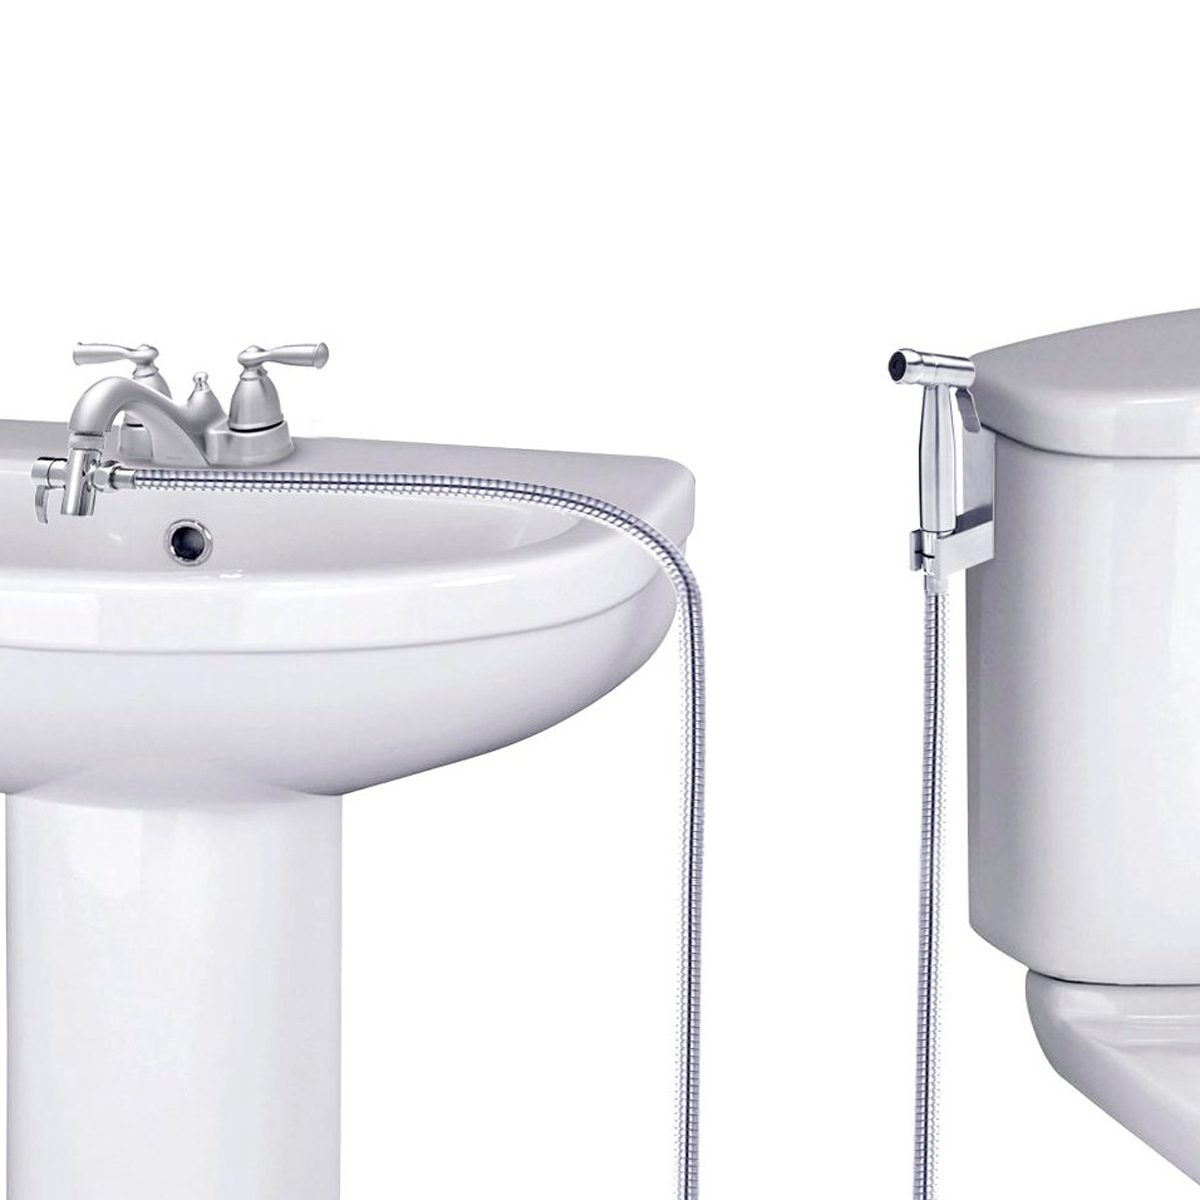 8 Bidet Attachments For Your Toilet Plus 1 You Can Take Wherever You Go